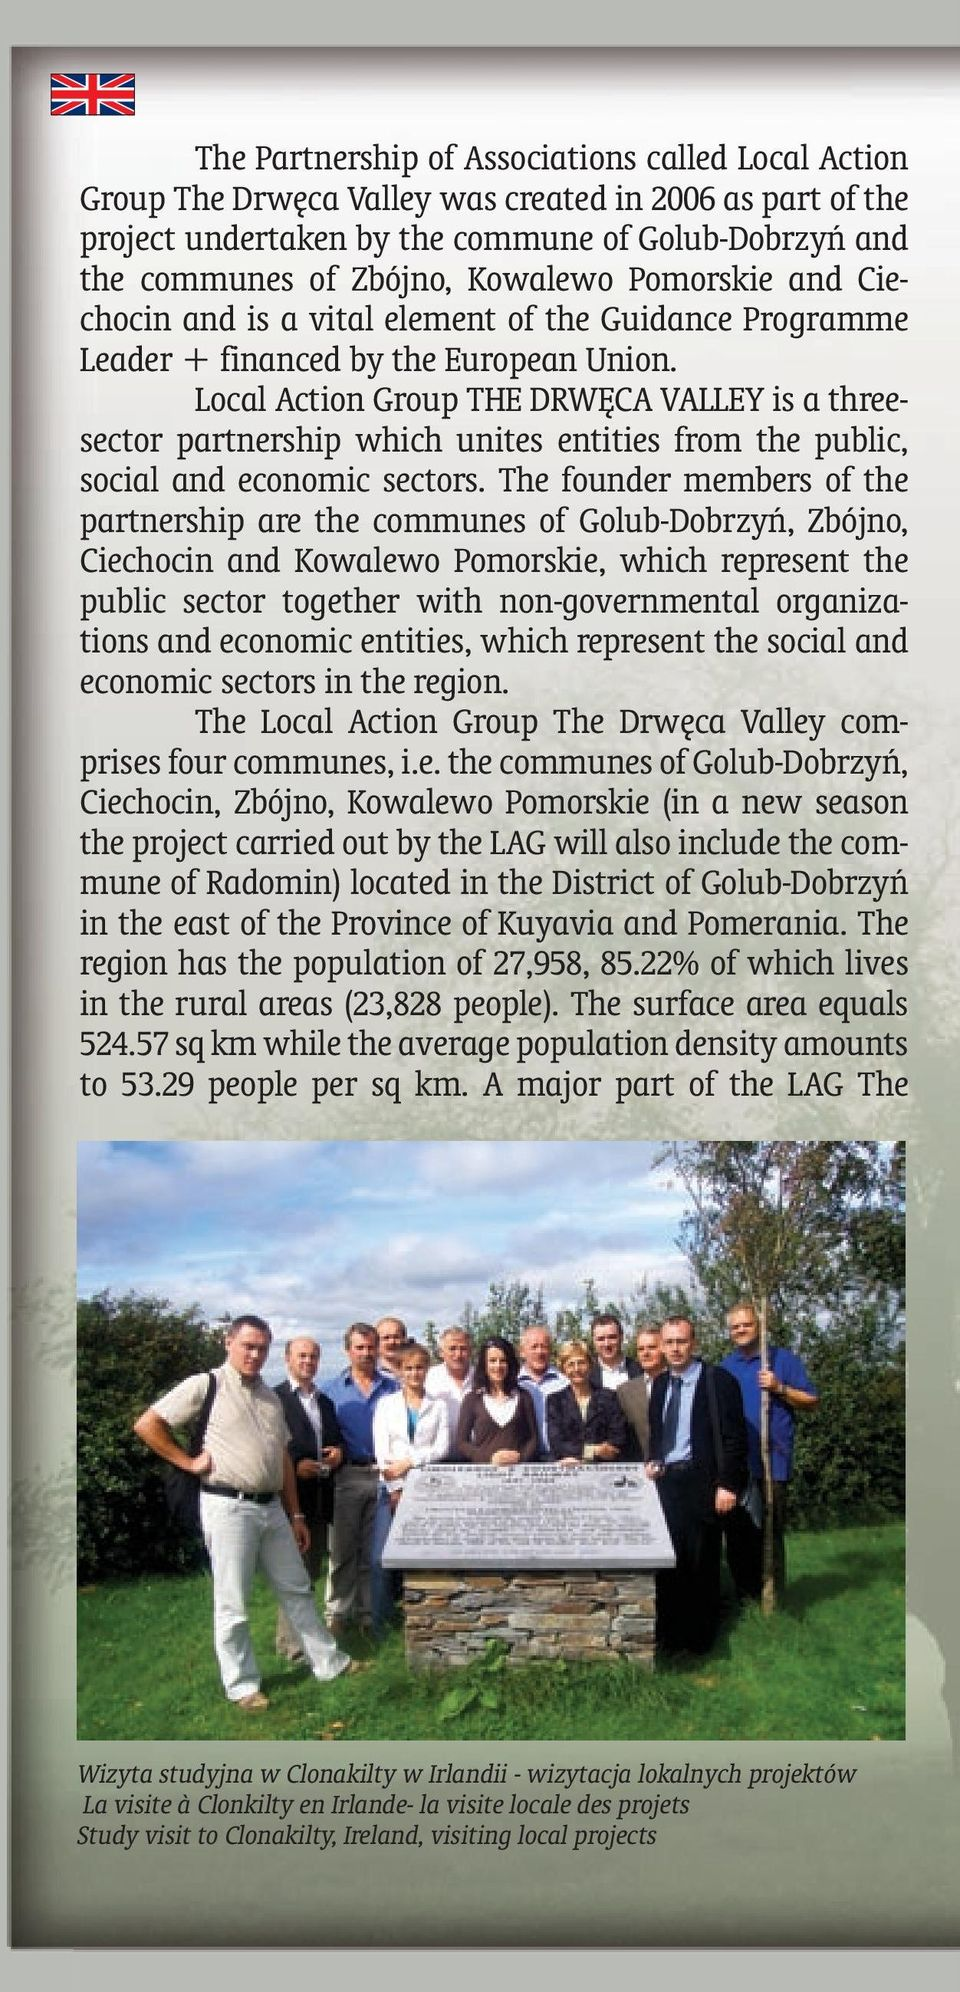 Local Action Group THE DRWĘCA VALLEY is a threesector partnership which unites entities from the public, social and economic sectors.